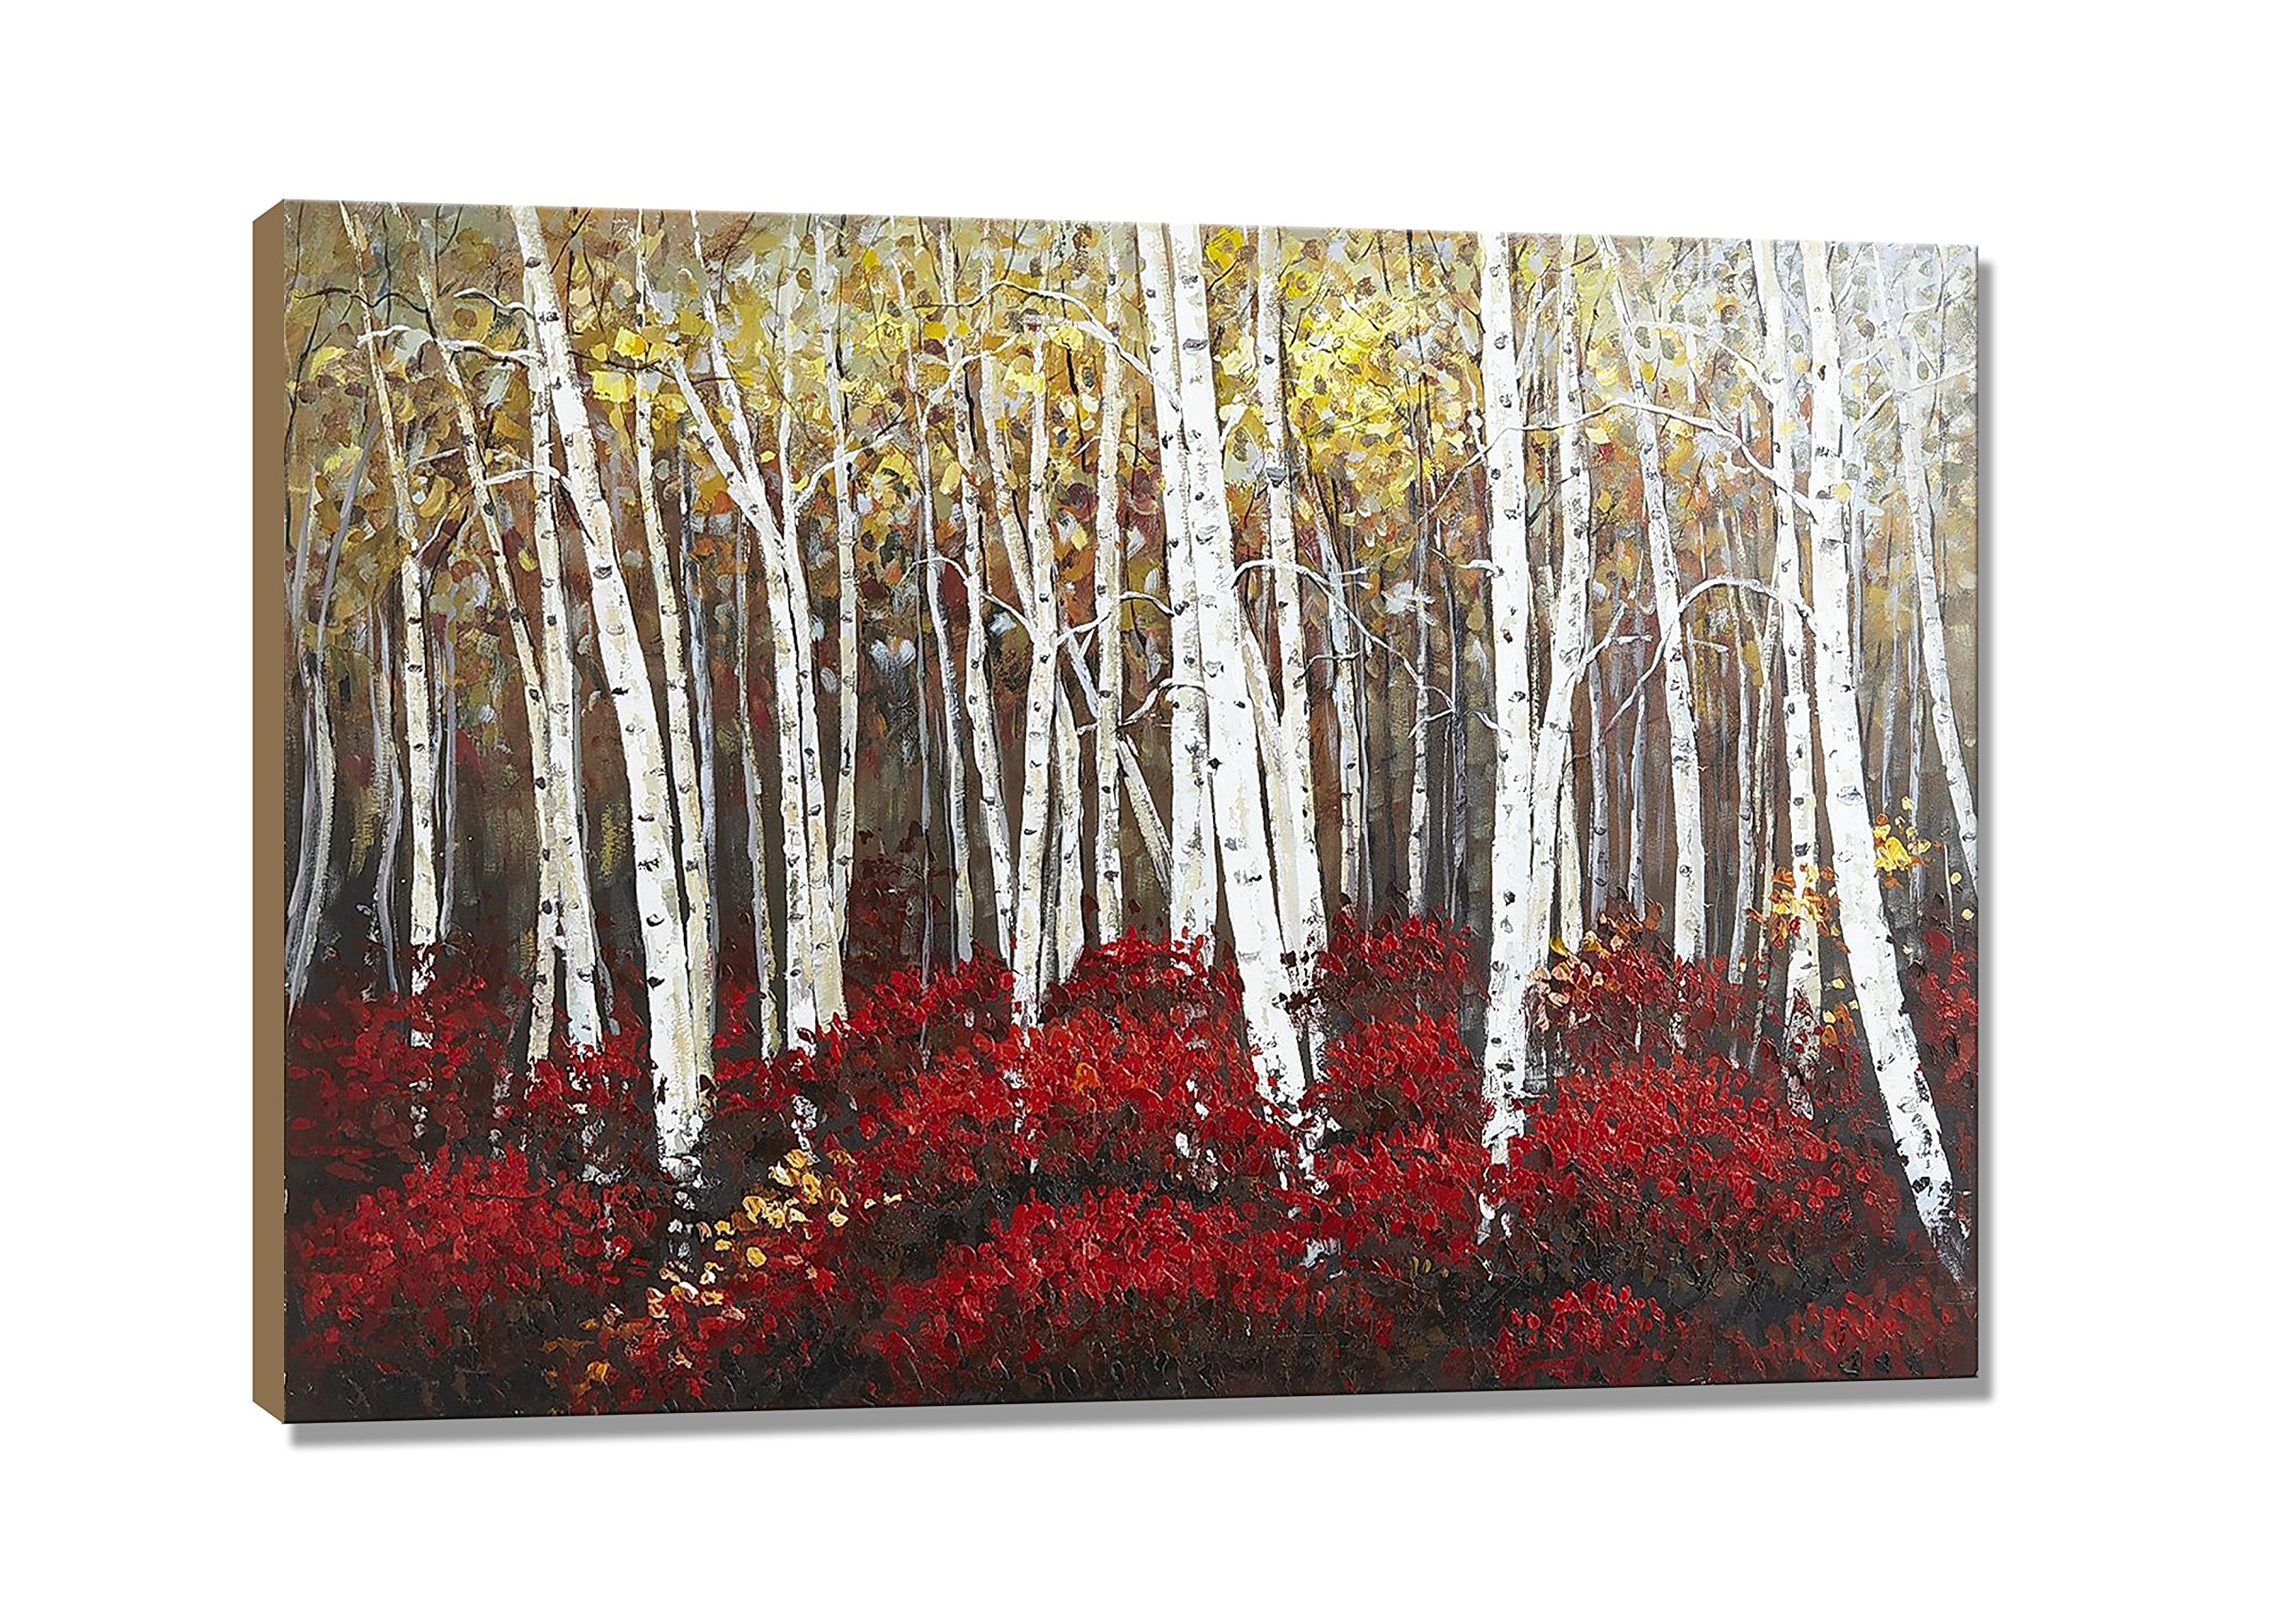 UAC WALL ARTS Watercolor Woods Hand Painted Canvas Wall Art for Home Wall Decor by UAC WALL ARTS (Image #2)